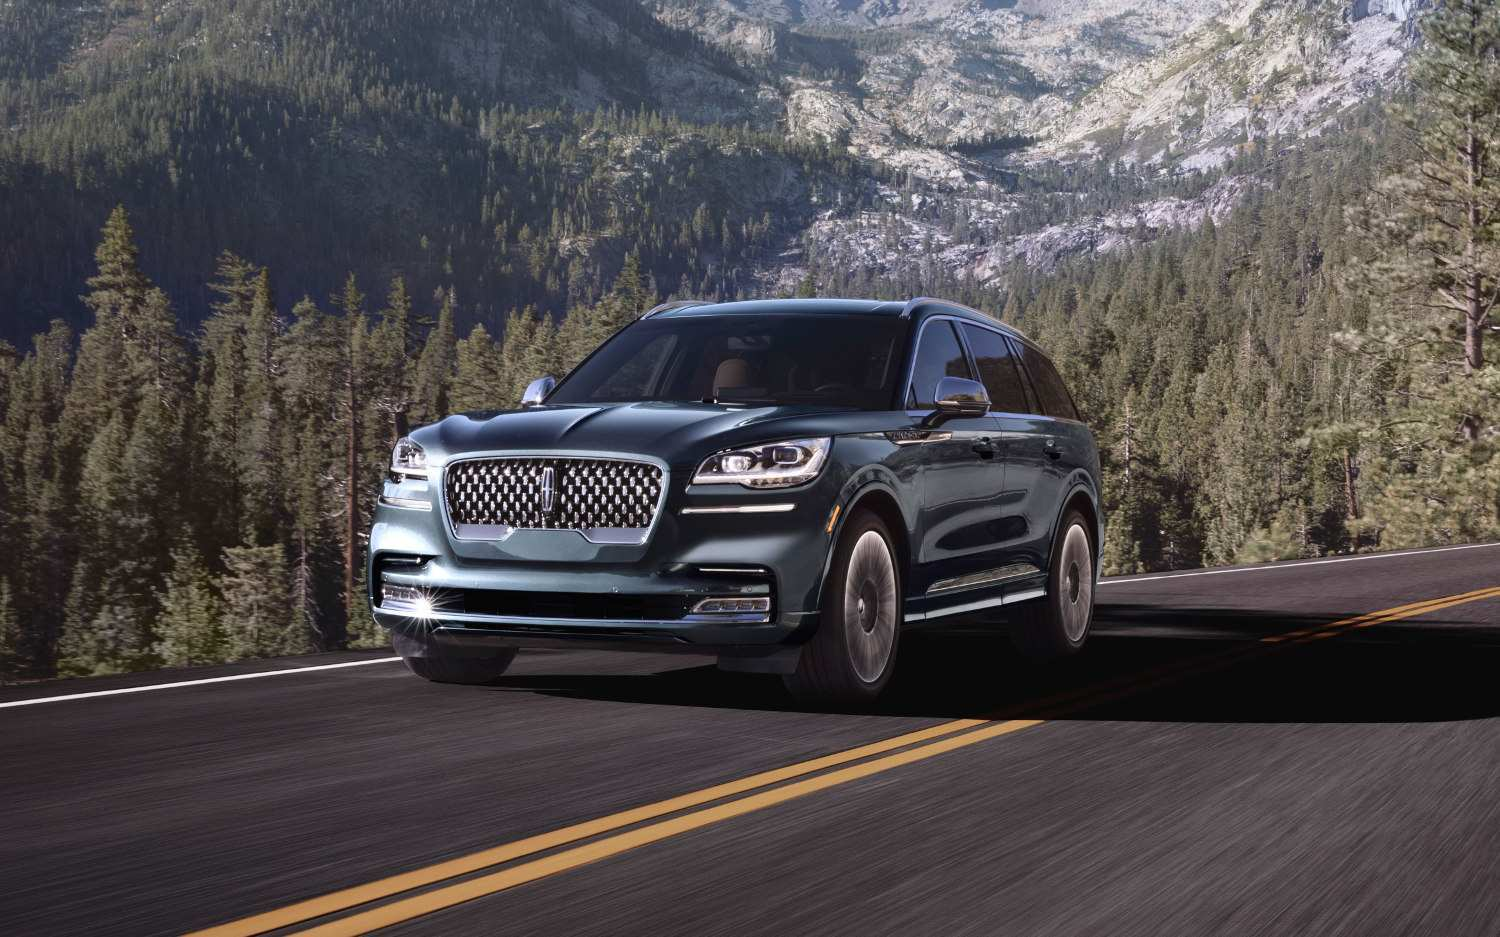 29 A 2020 Lincoln Aviator Vs Buick Enclave Price